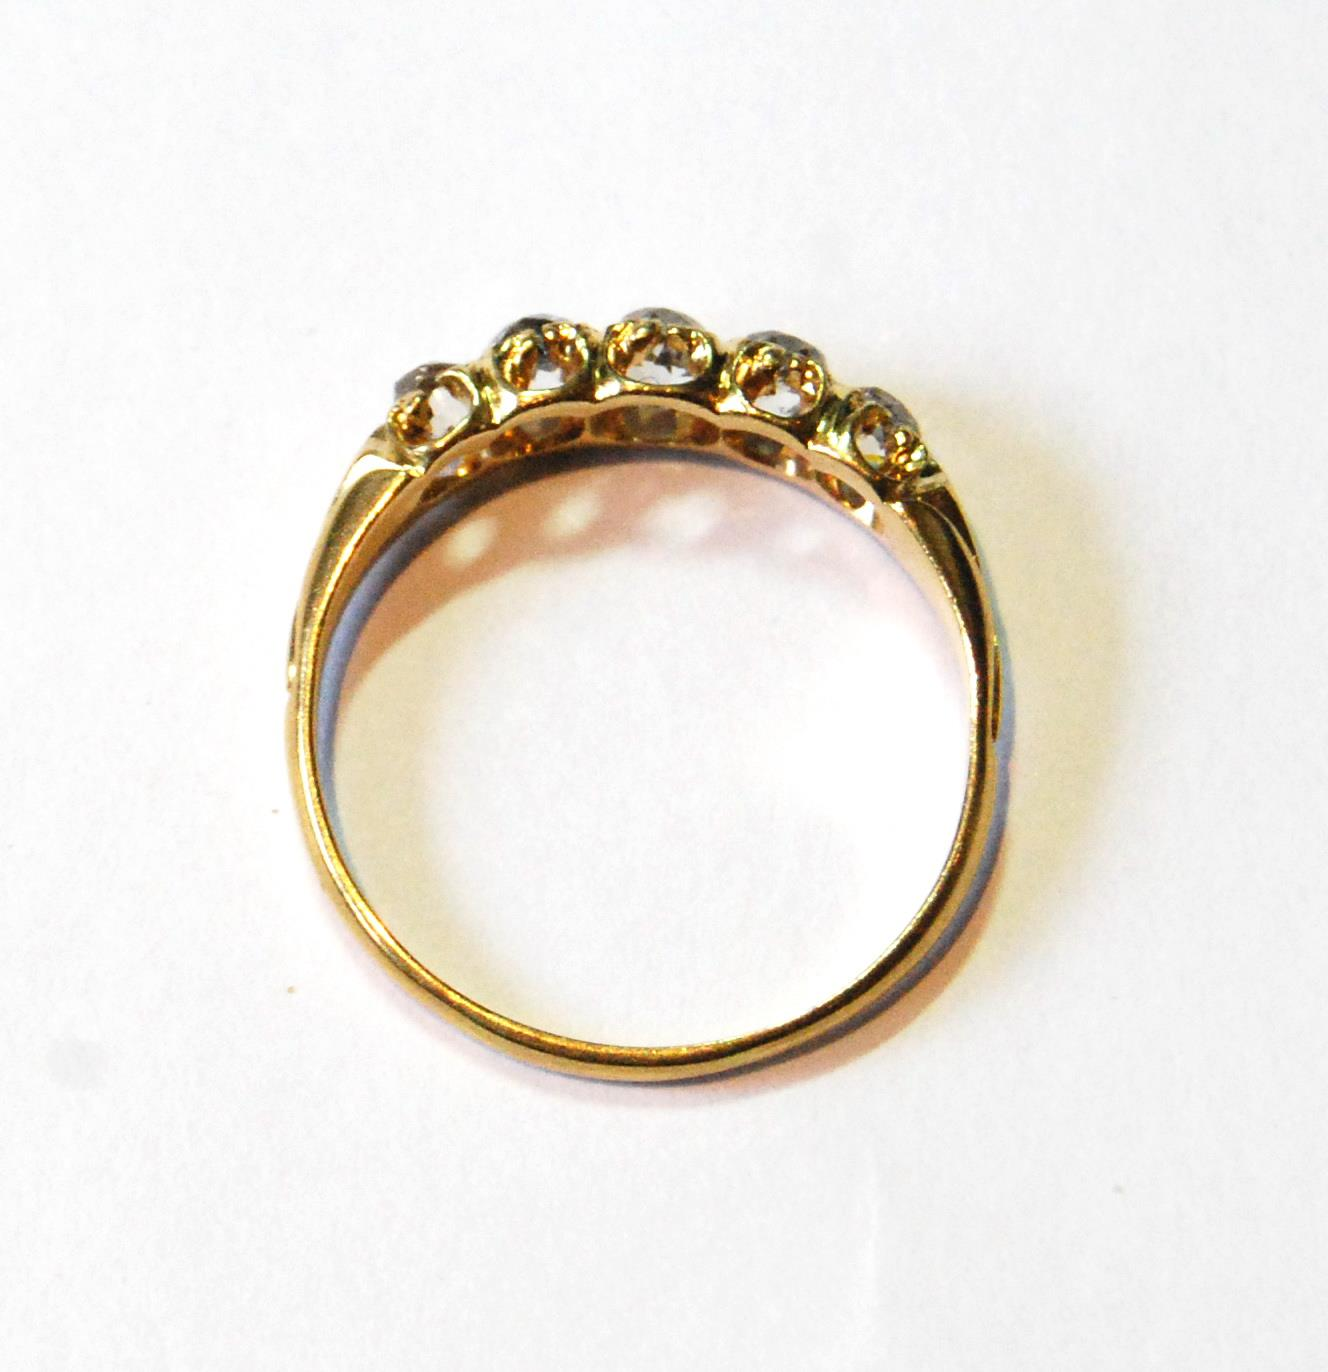 Victorian diamond five-stone half hoop ring, old-cut brilliants, in gold, size Q. - Image 3 of 4